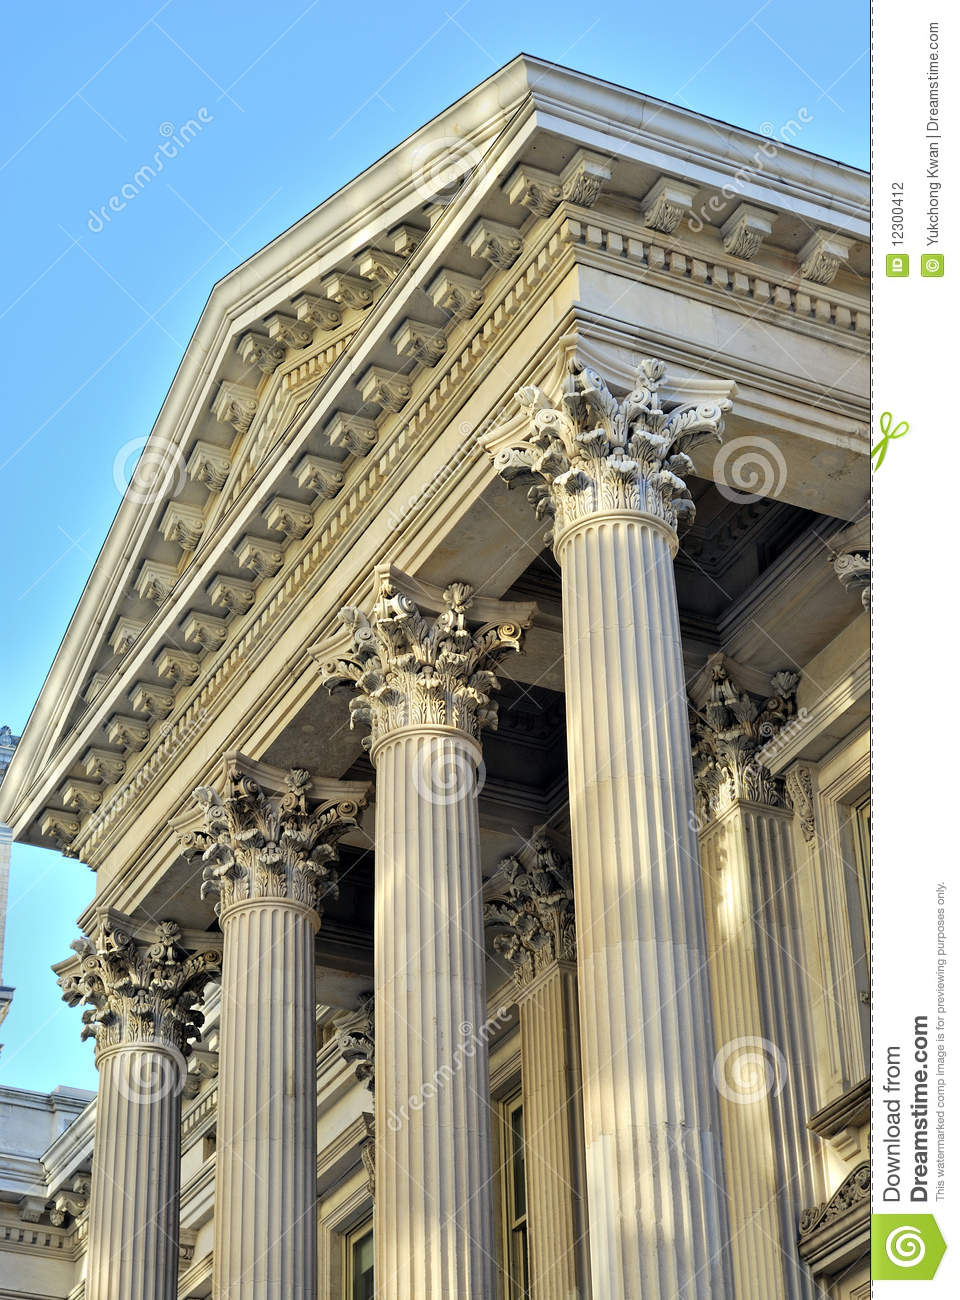 Neoclassical architecture with columns stock photo image for Architectural columns